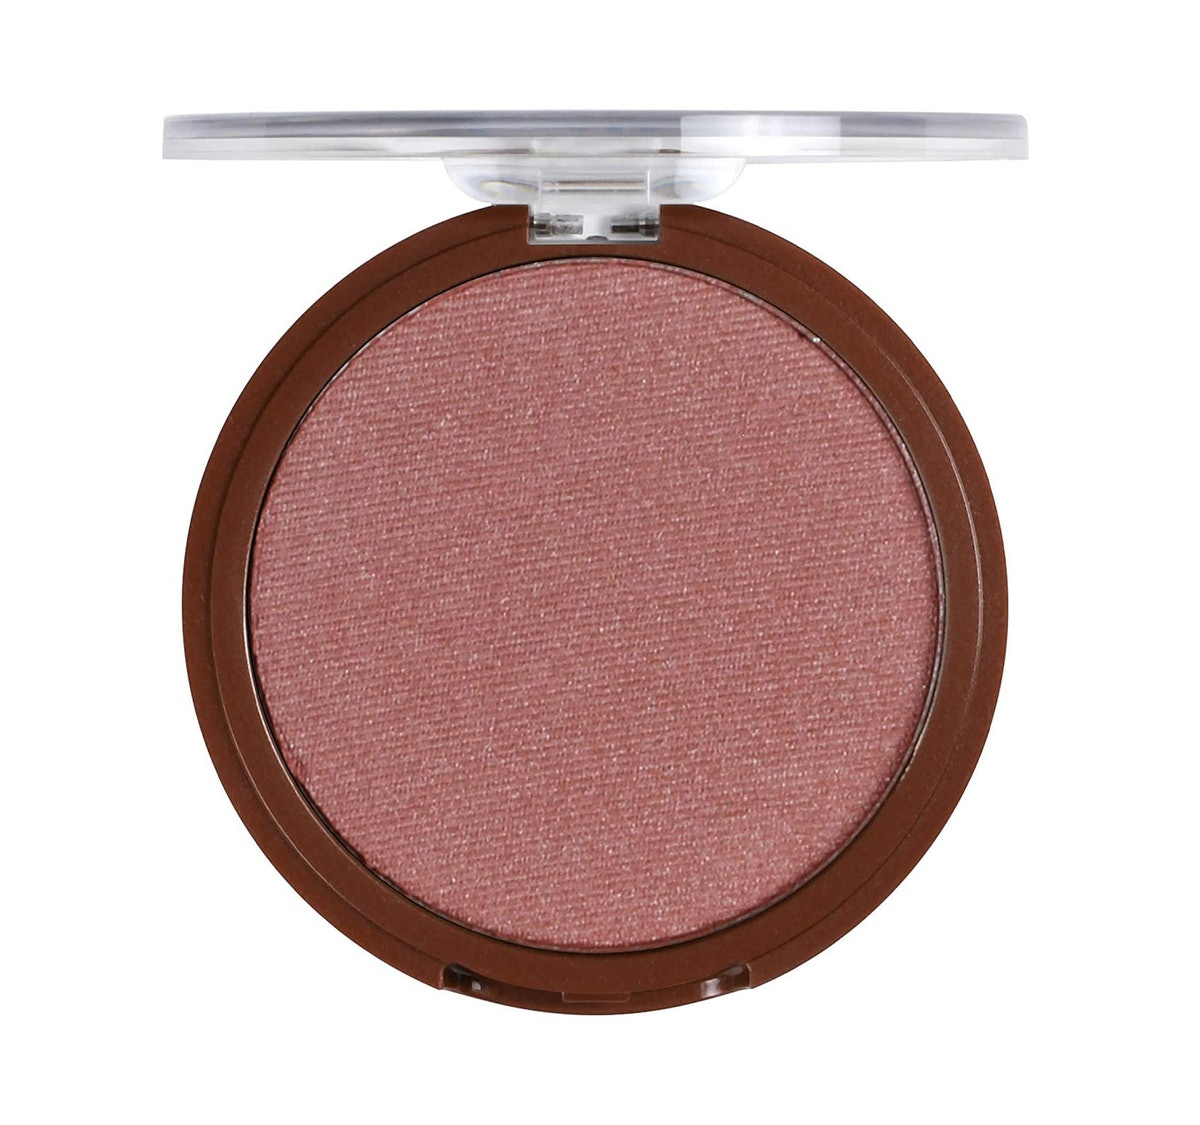 Mineral Fusion Airy Makeup Blush